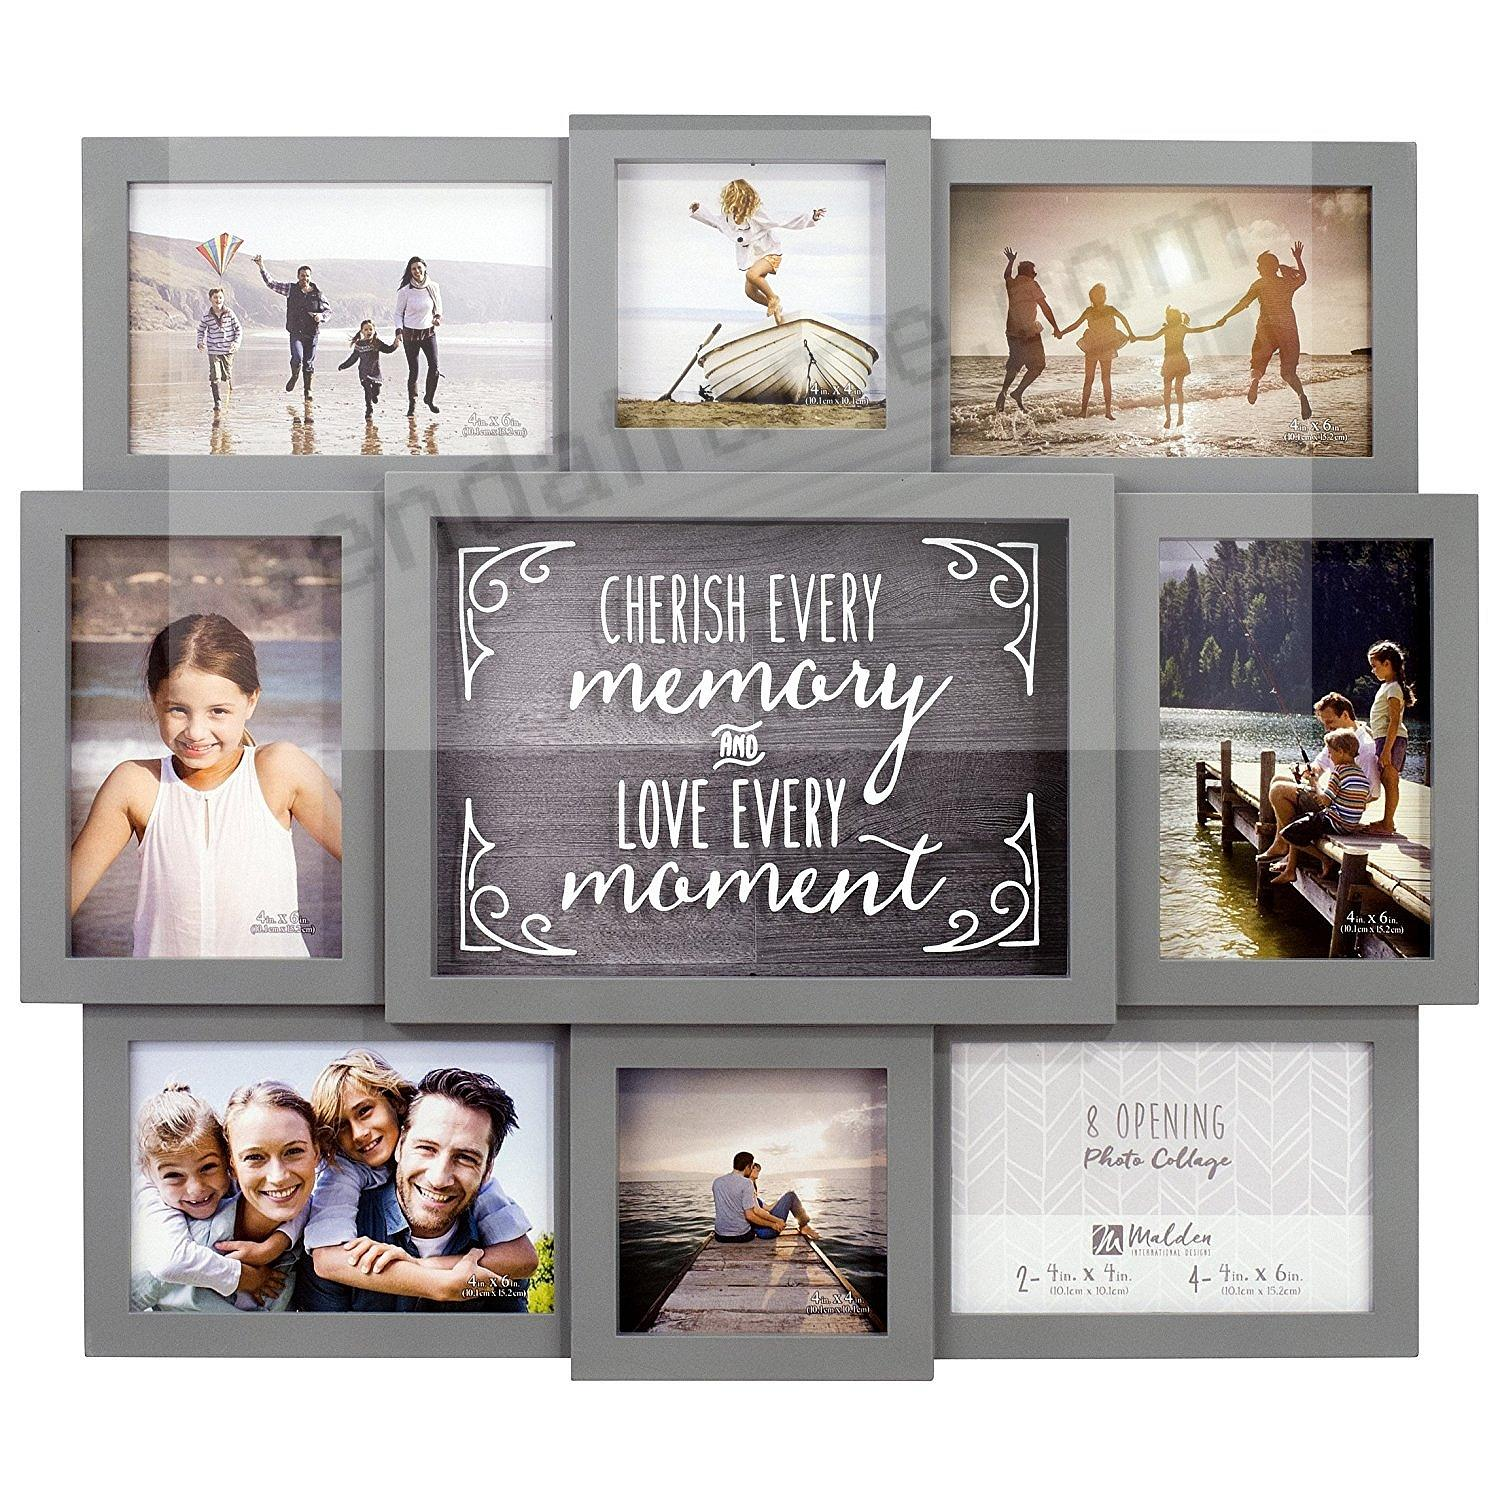 CHERISH EVERY MEMORY + LOVE EVERY MOMENT Collage by Malden®